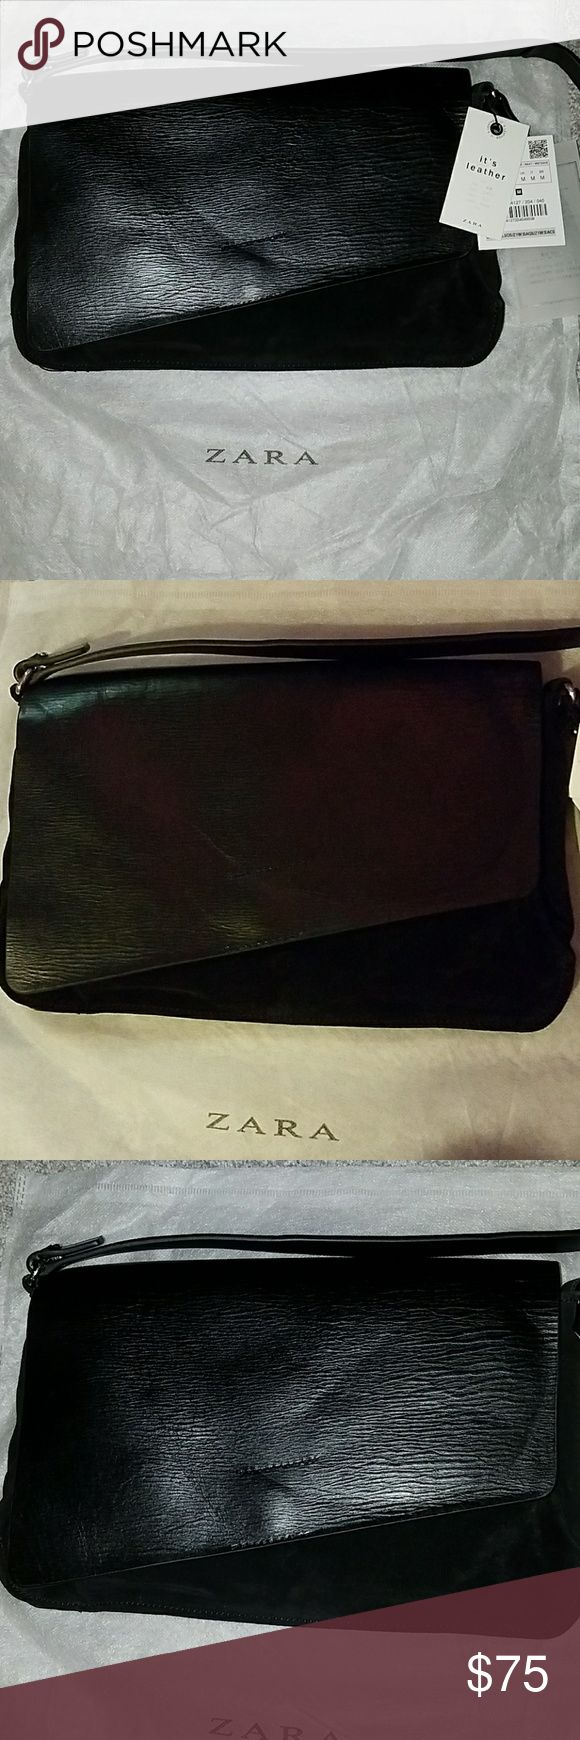 Leather Zara purse NWT Leather and suede Zara purse, still has tags and paper inside purse. Open to offers! Zara Bags Shoulder Bags